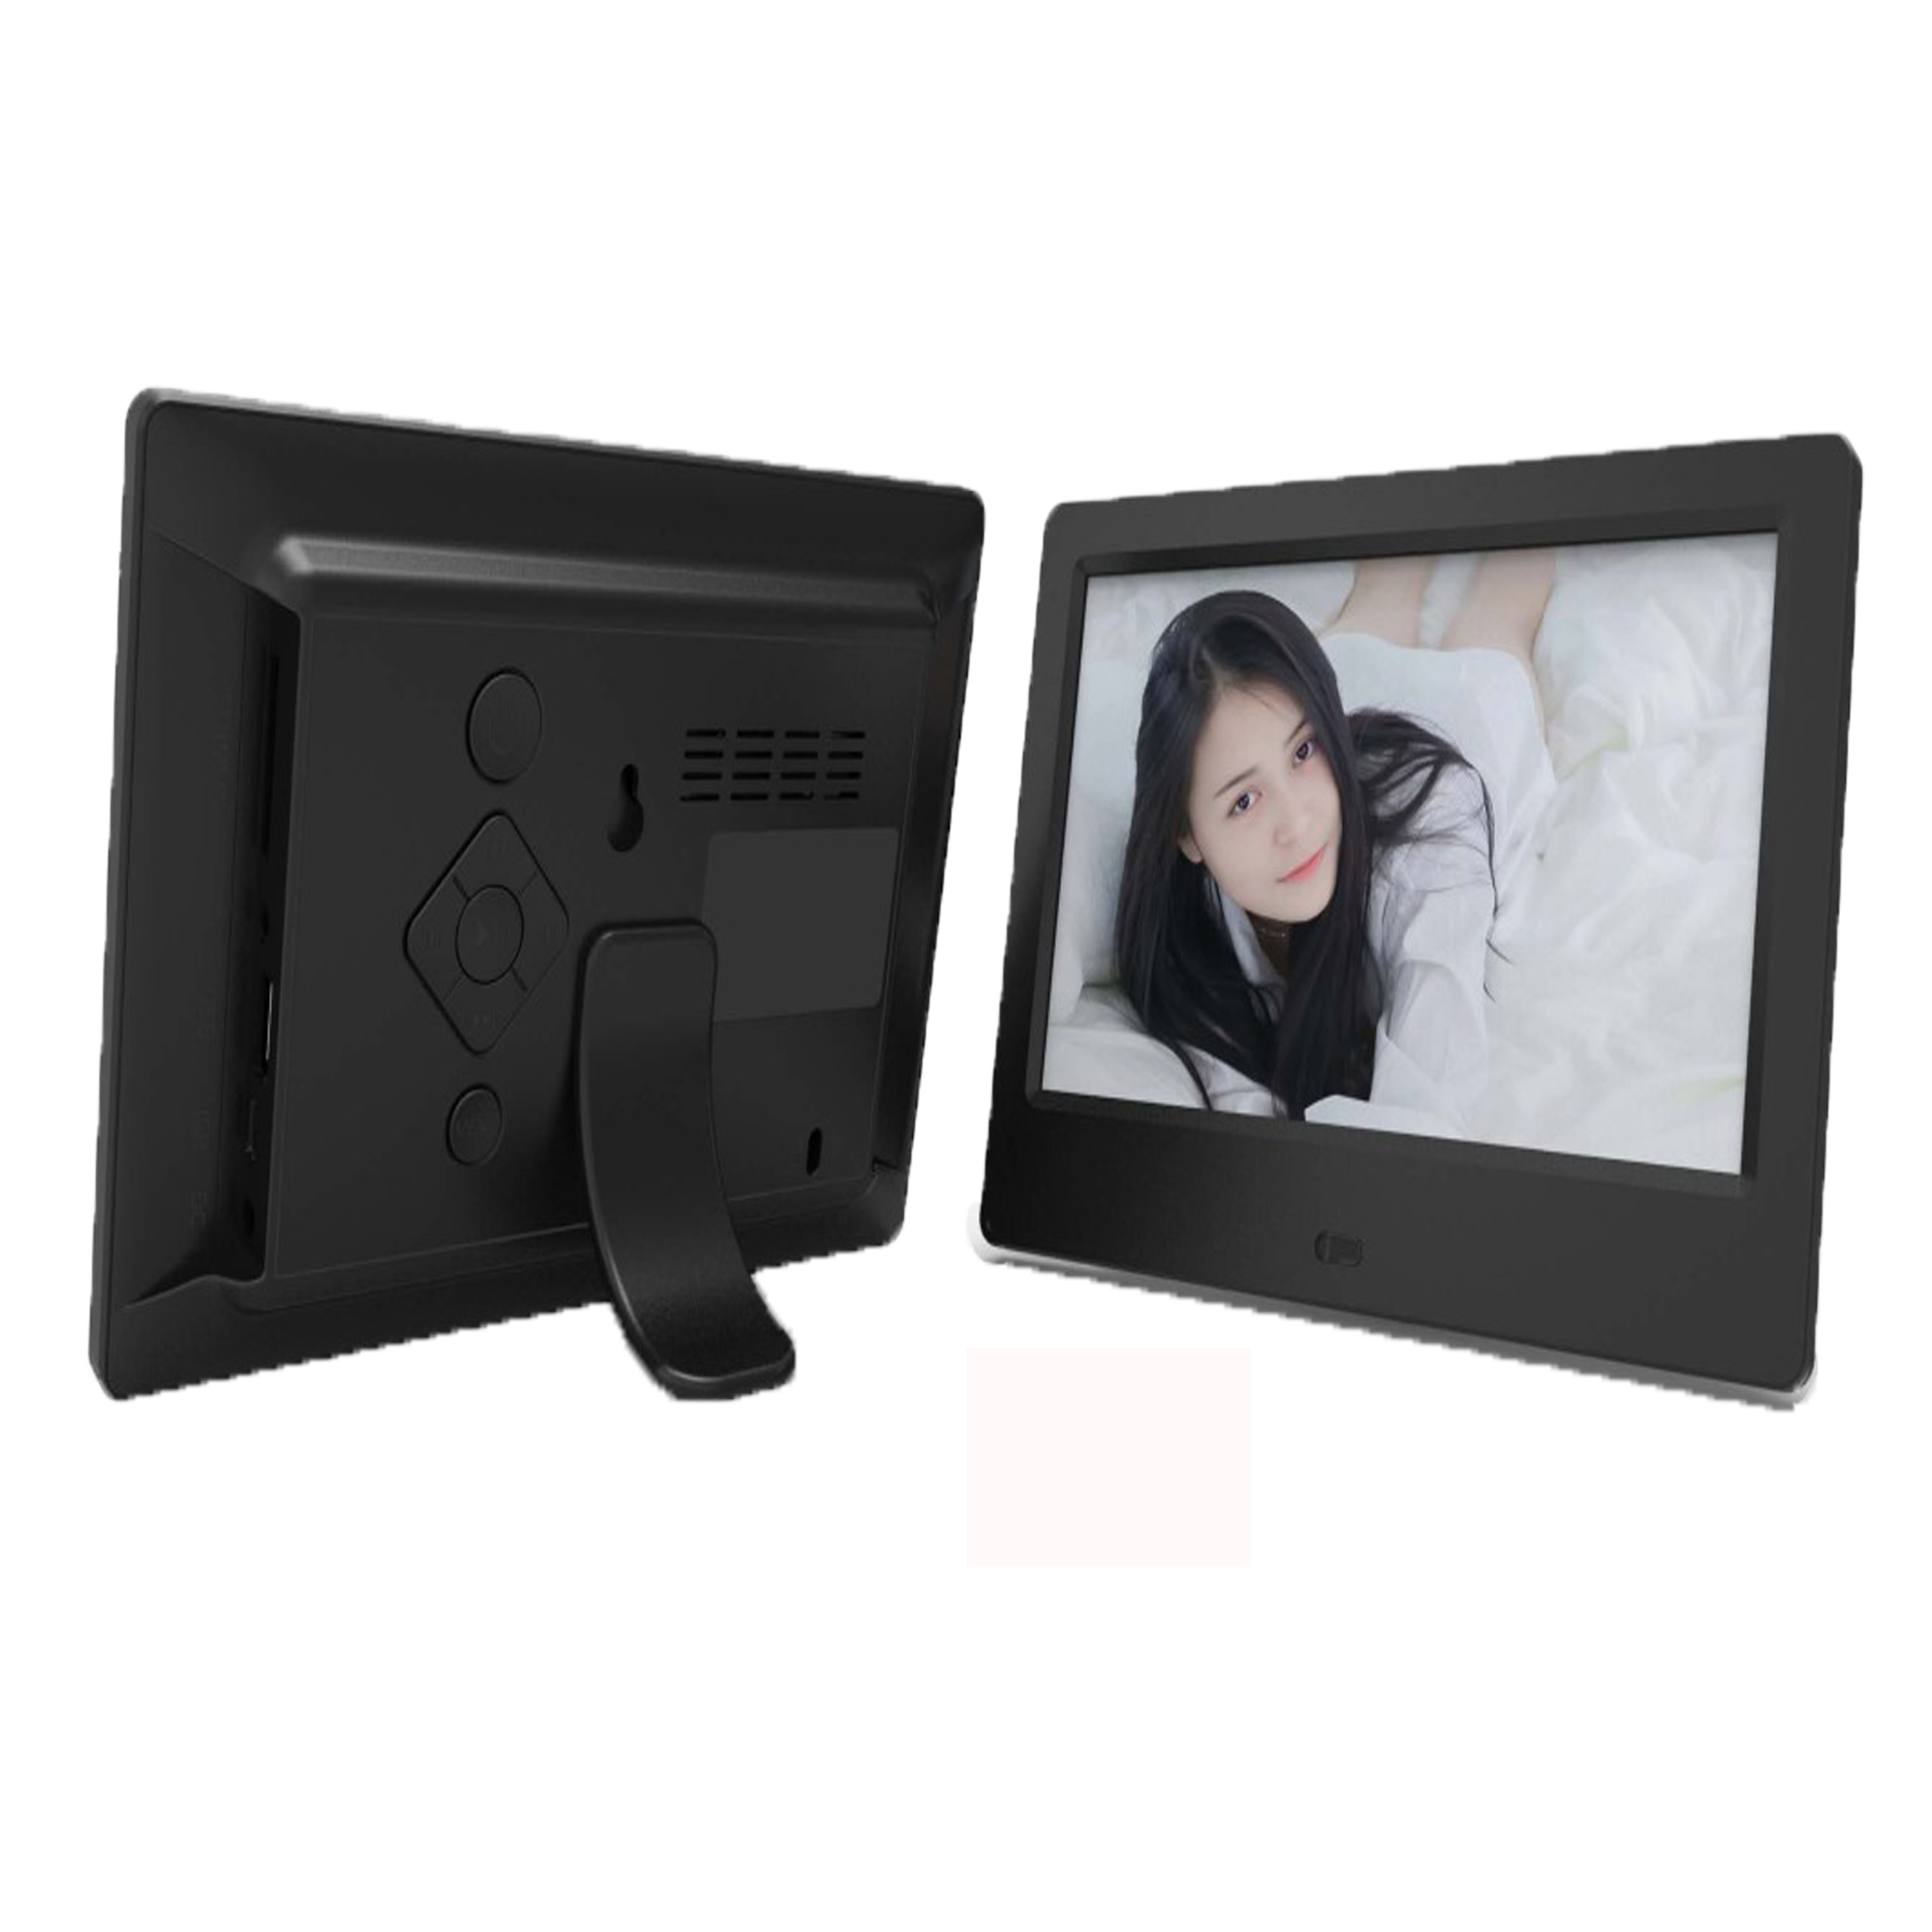 7-inch HD digital photo frame Video Player digital photo frame with music, video function Free shipping7-inch HD digital photo frame Video Player digital photo frame with music, video function Free shipping